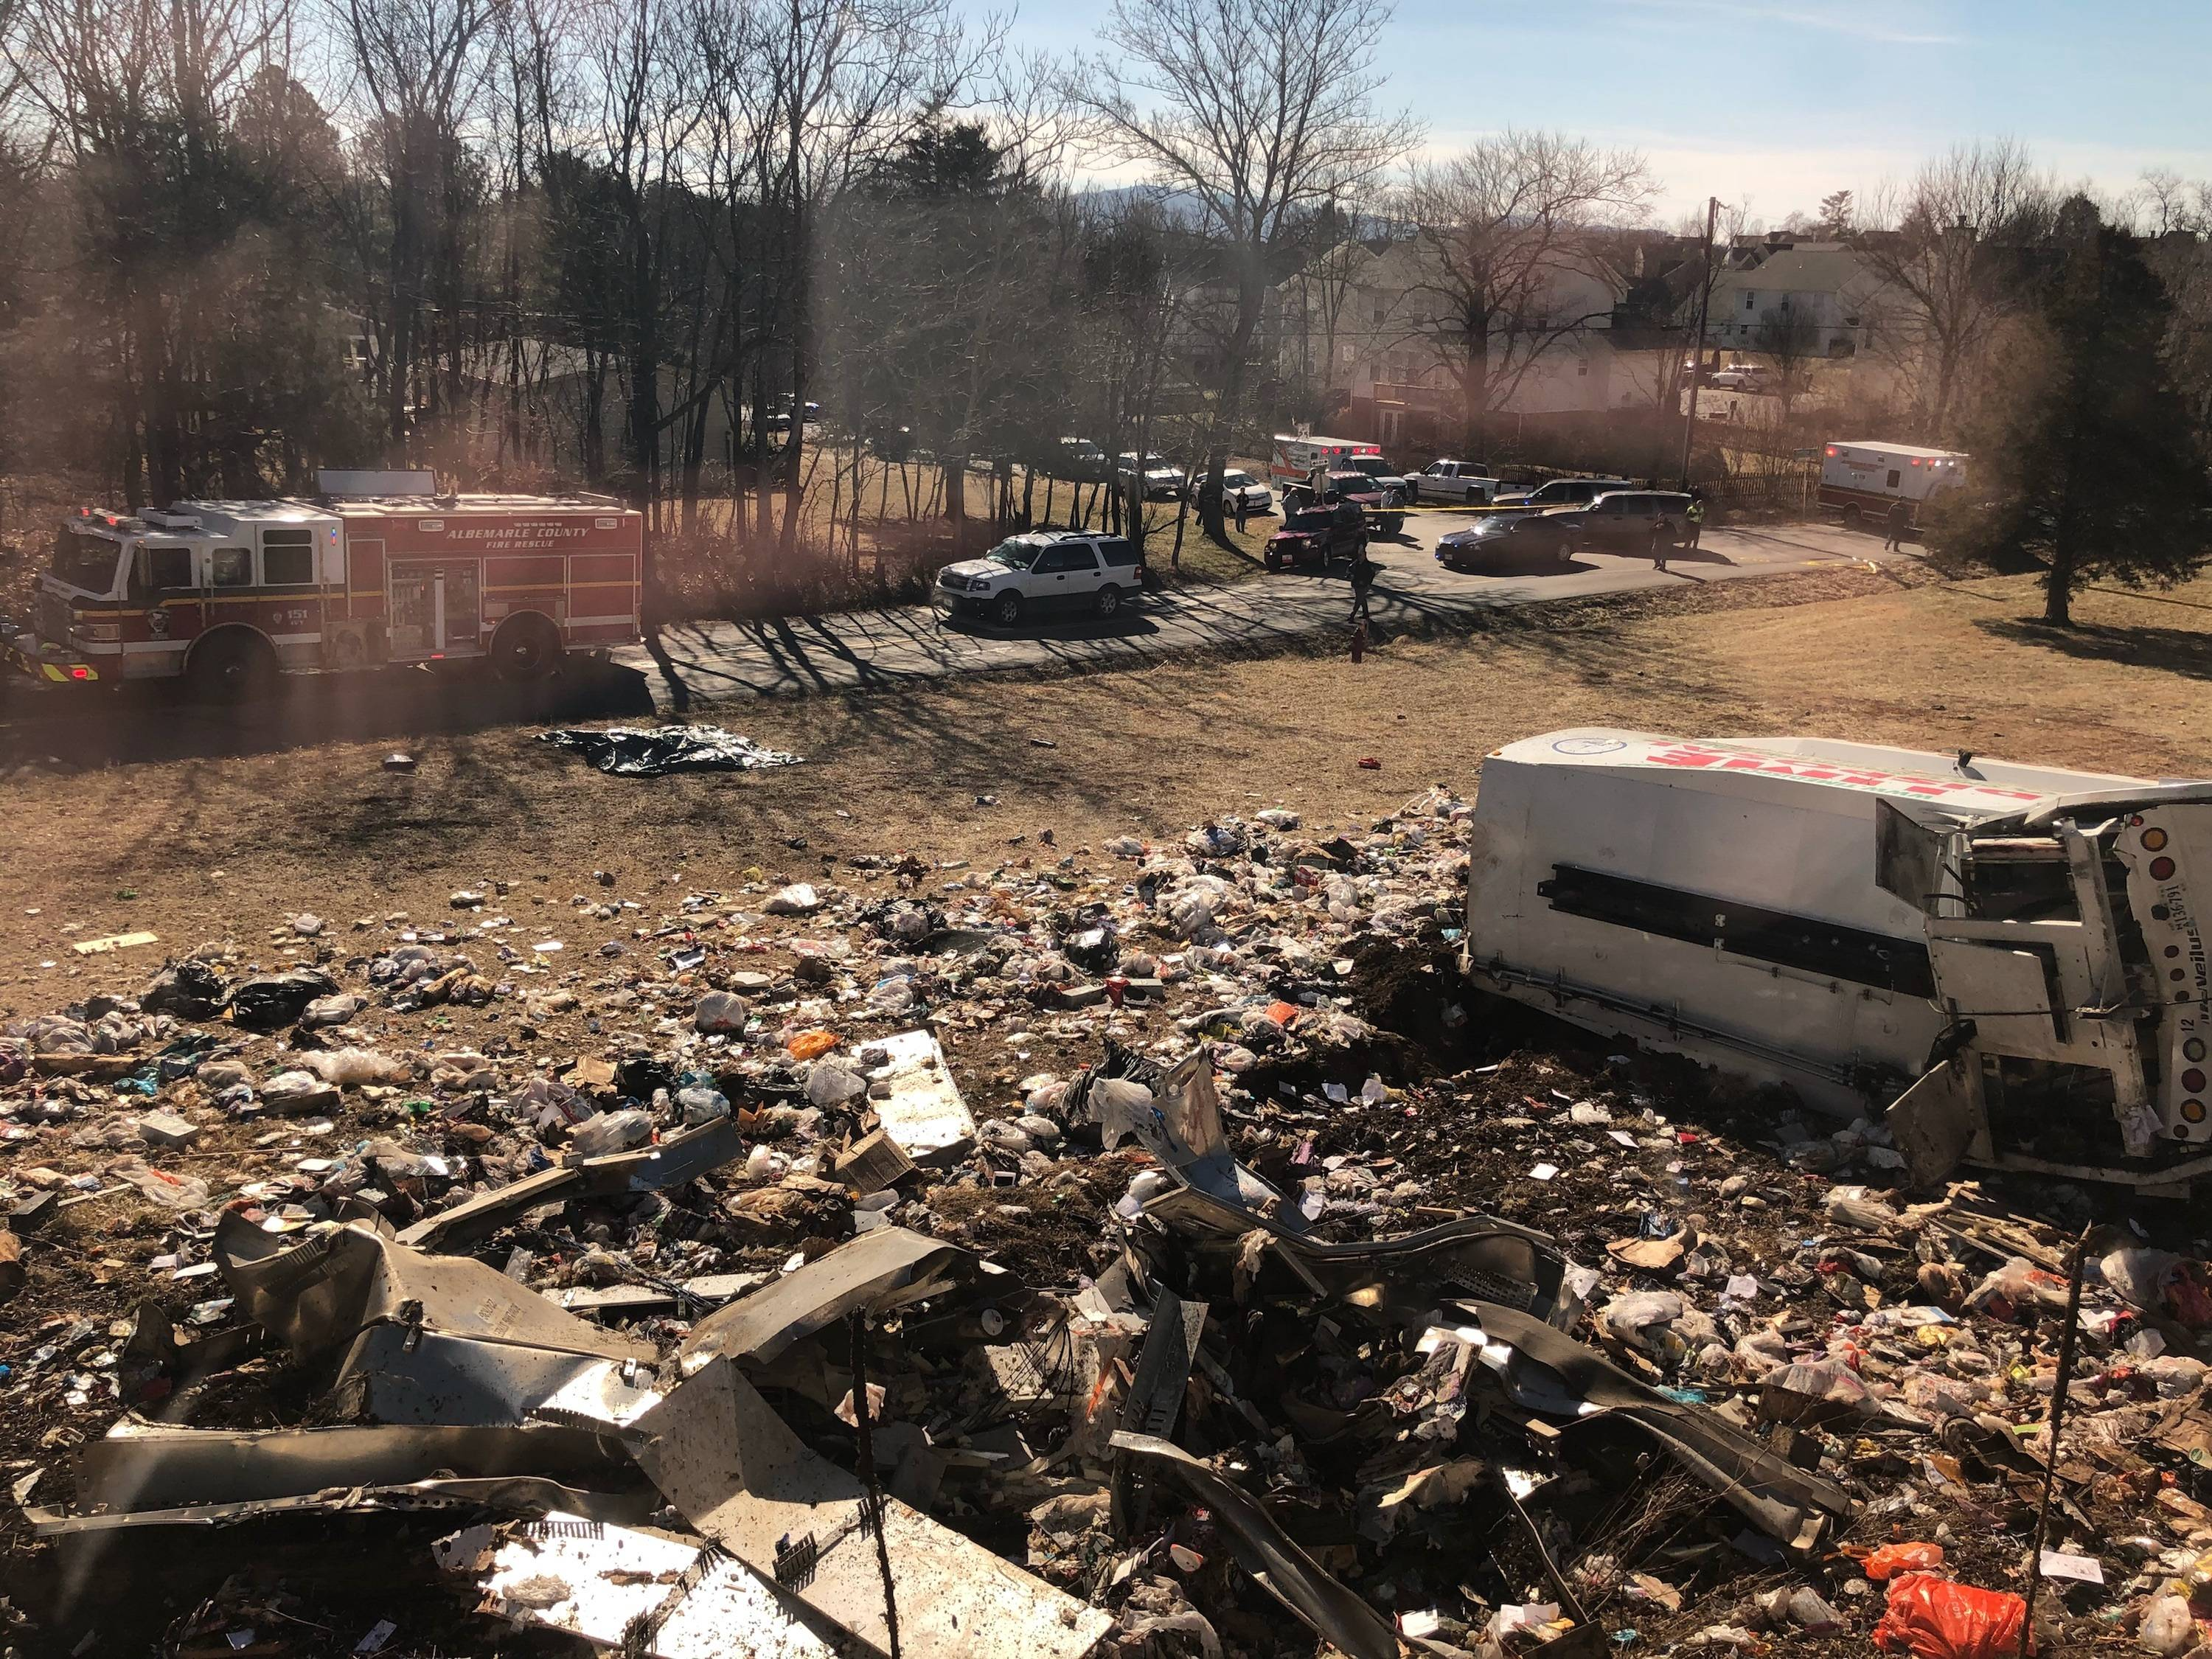 This photo provided by a member of Congress, shows a crash site near Crozet, Va., Wednesday, Jan. 31, 2018.   A chartered train carrying dozens of GOP lawmakers to a Republican retreat in West Virginia struck a garbage truck south of Charlottesville, Virginia on Wednesday, lawmakers said.